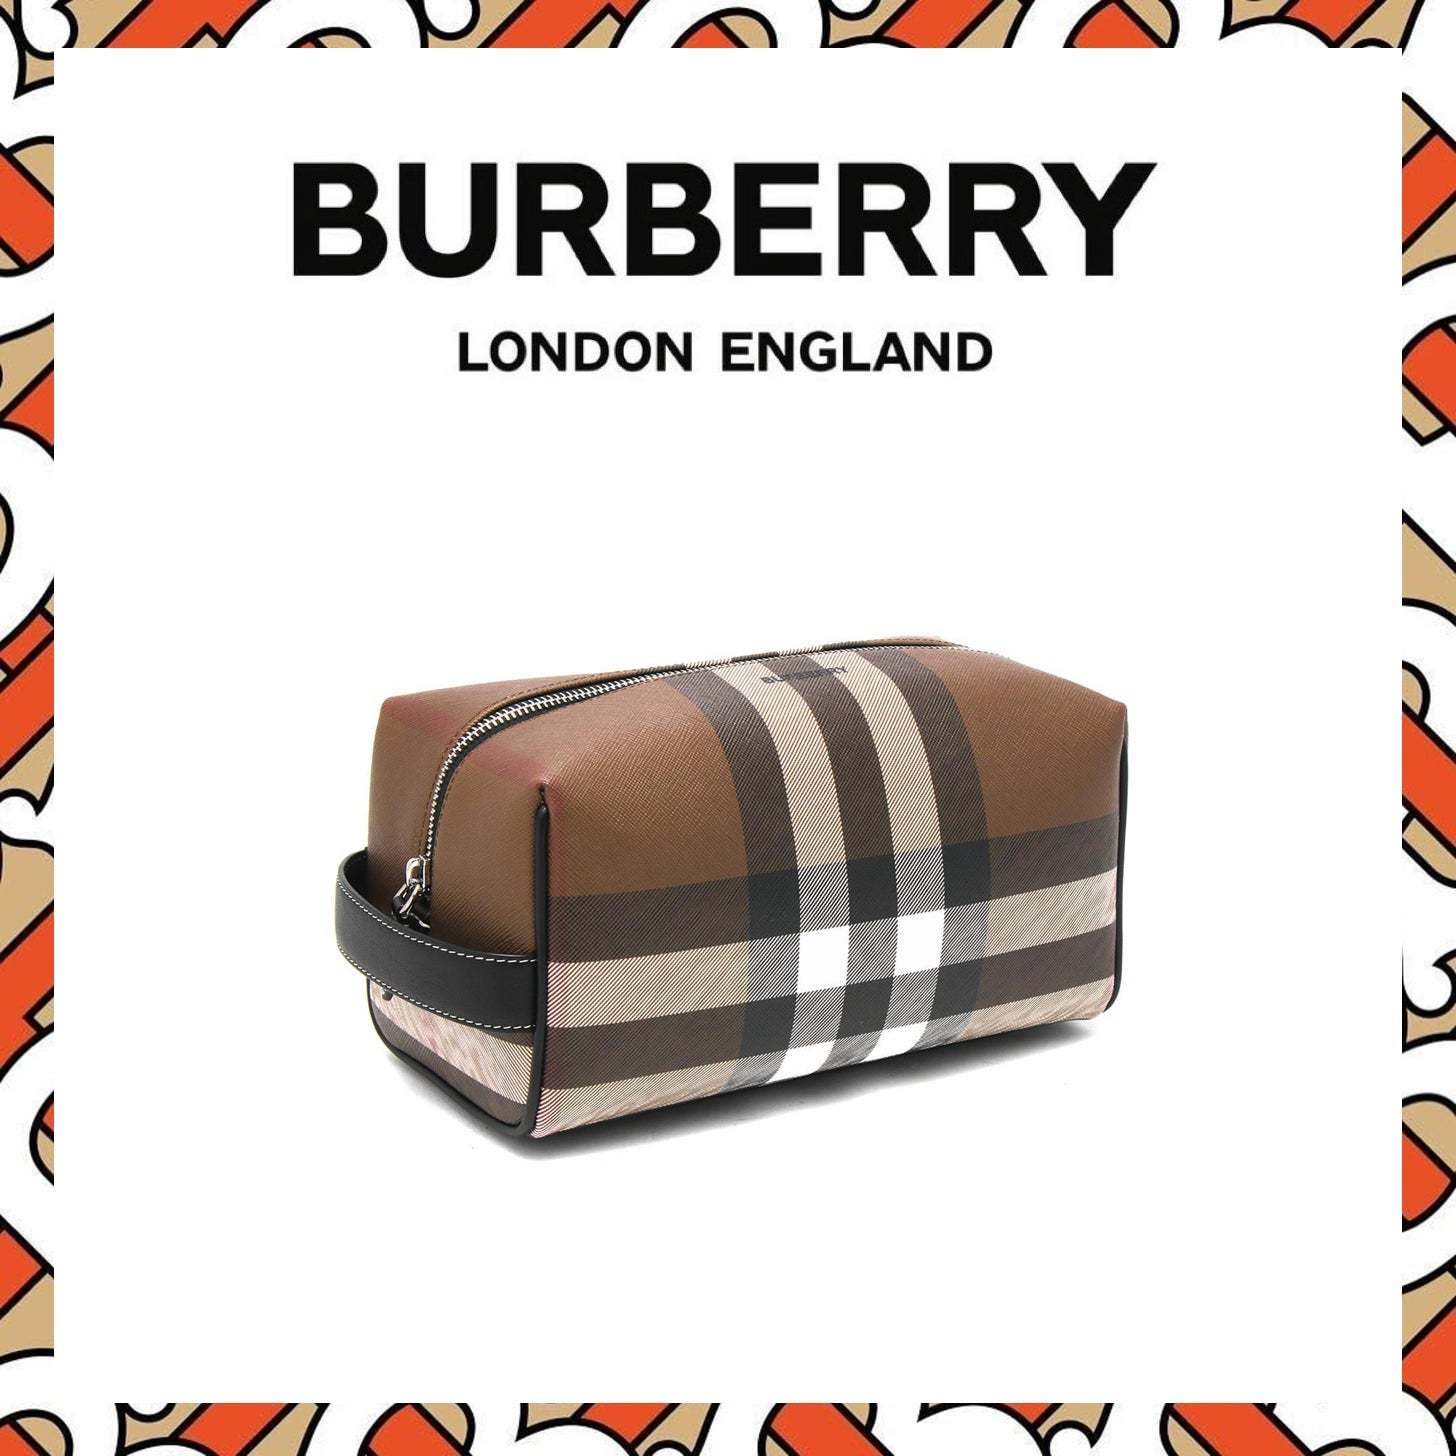 ★BURBERRY★ GIANT CHECK セカンドバッグ (Burberry/クラッチバッグ) 66256321